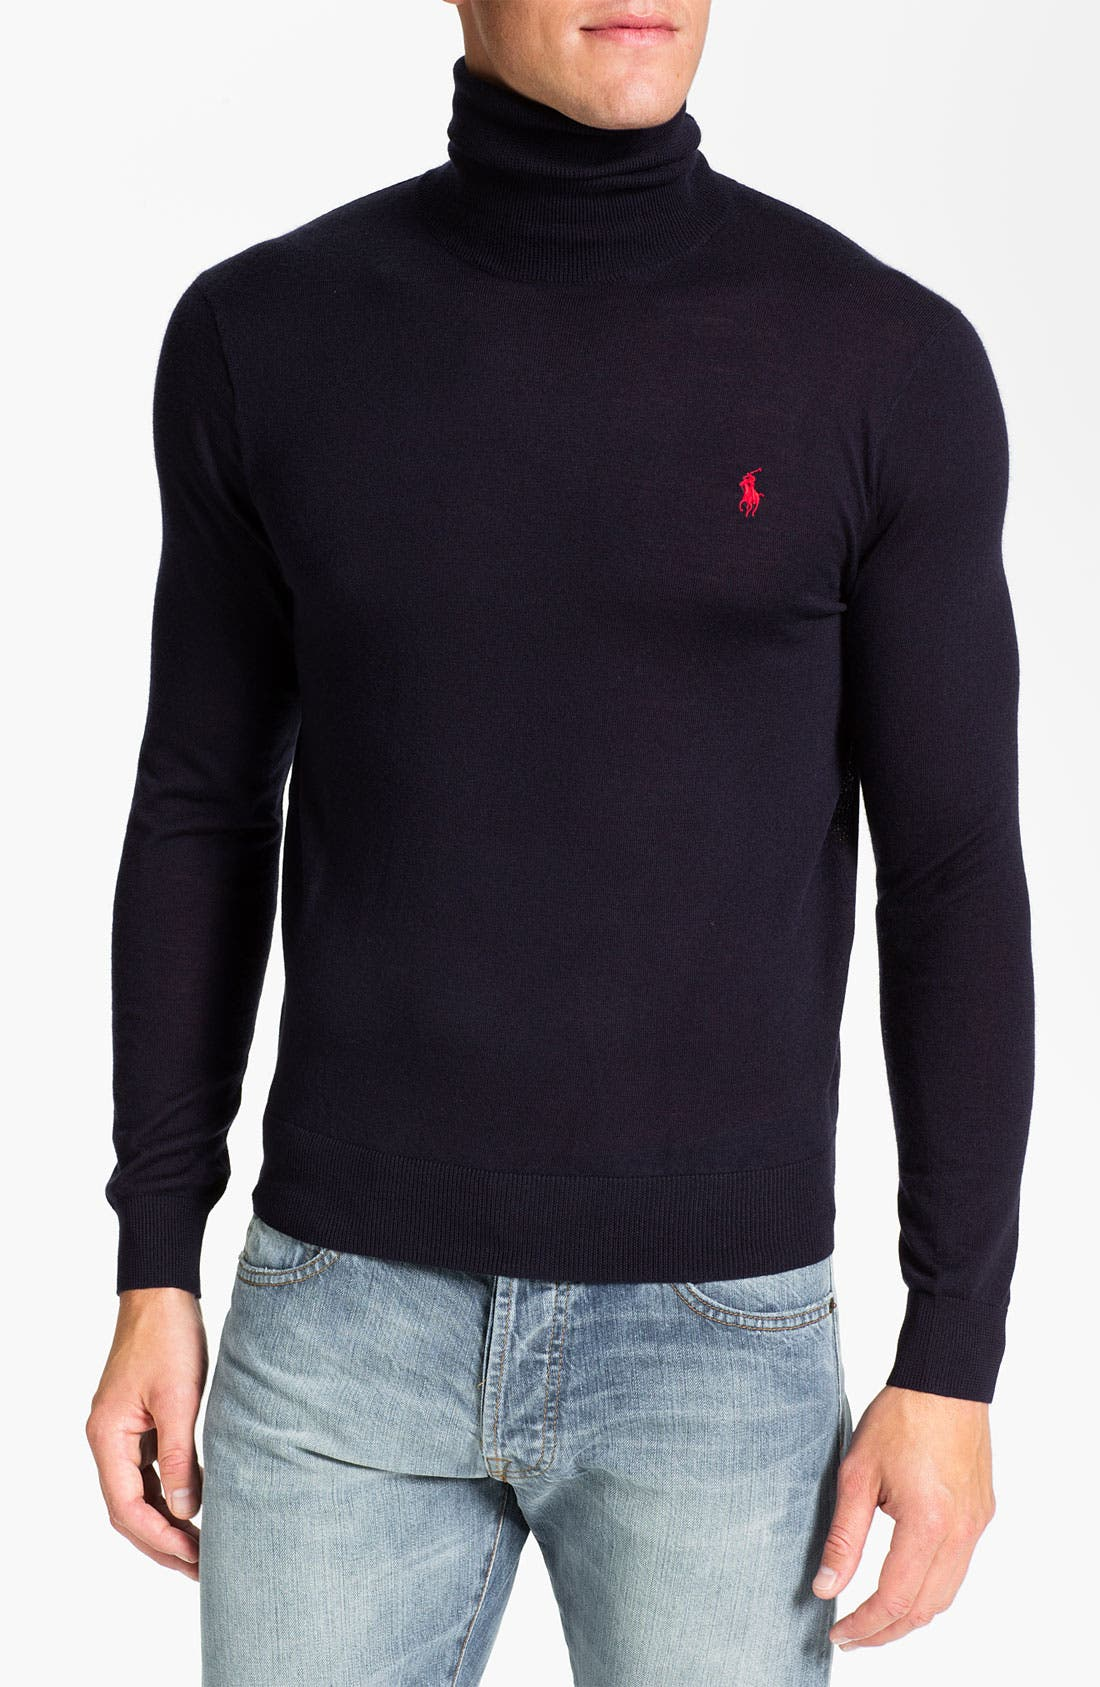 Main Image - Polo Ralph Lauren Classic Fit Merino Wool Turtleneck Sweater